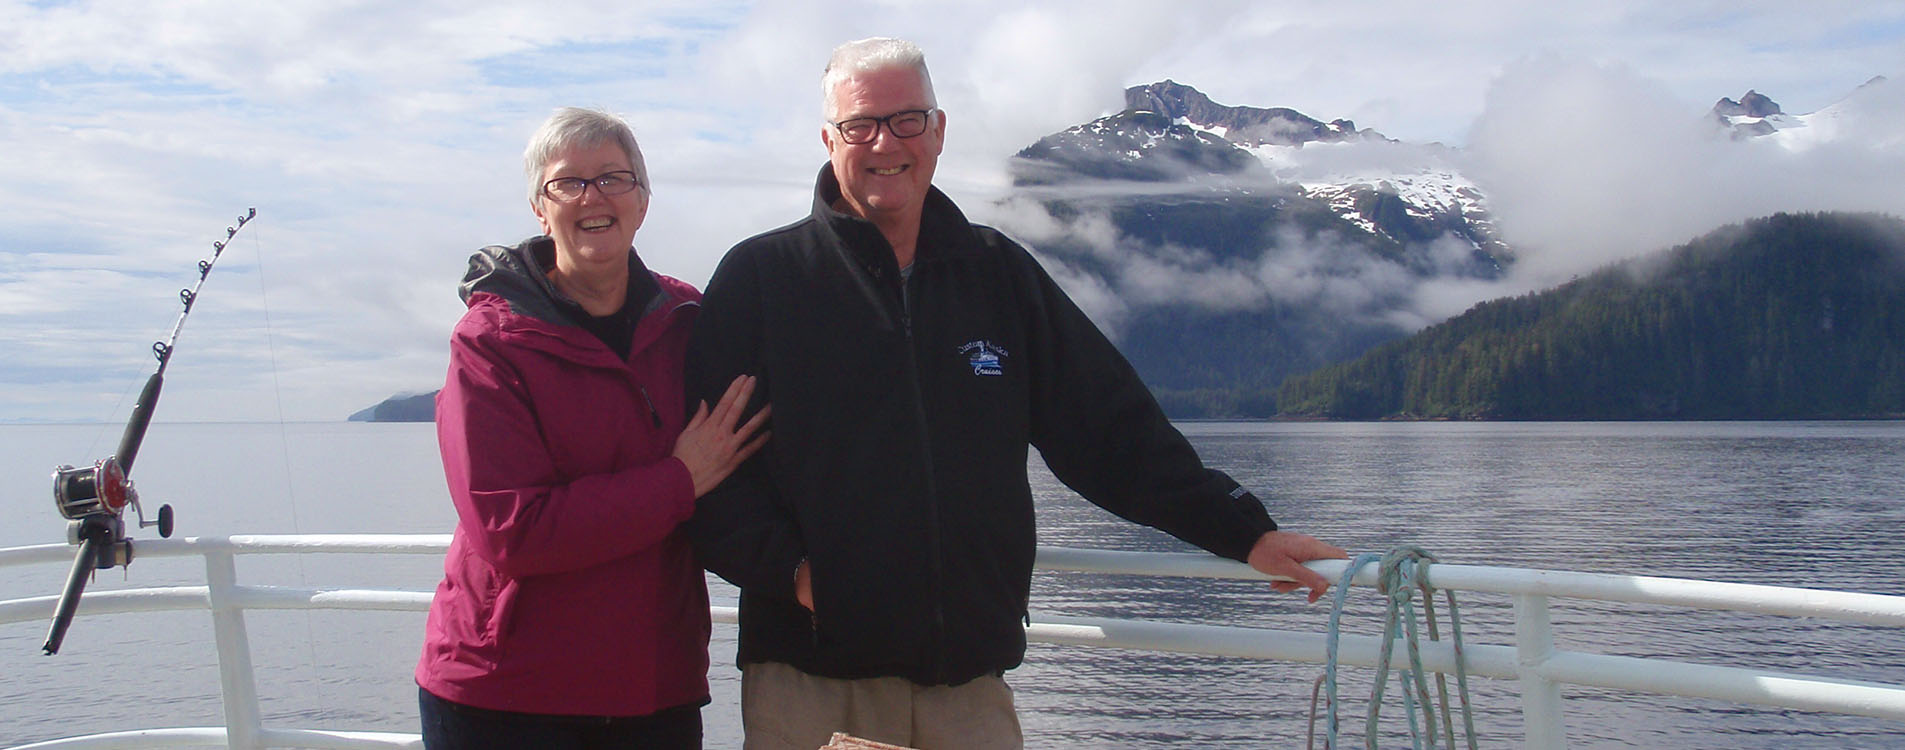 Alaska Cruise Fishing Excursions